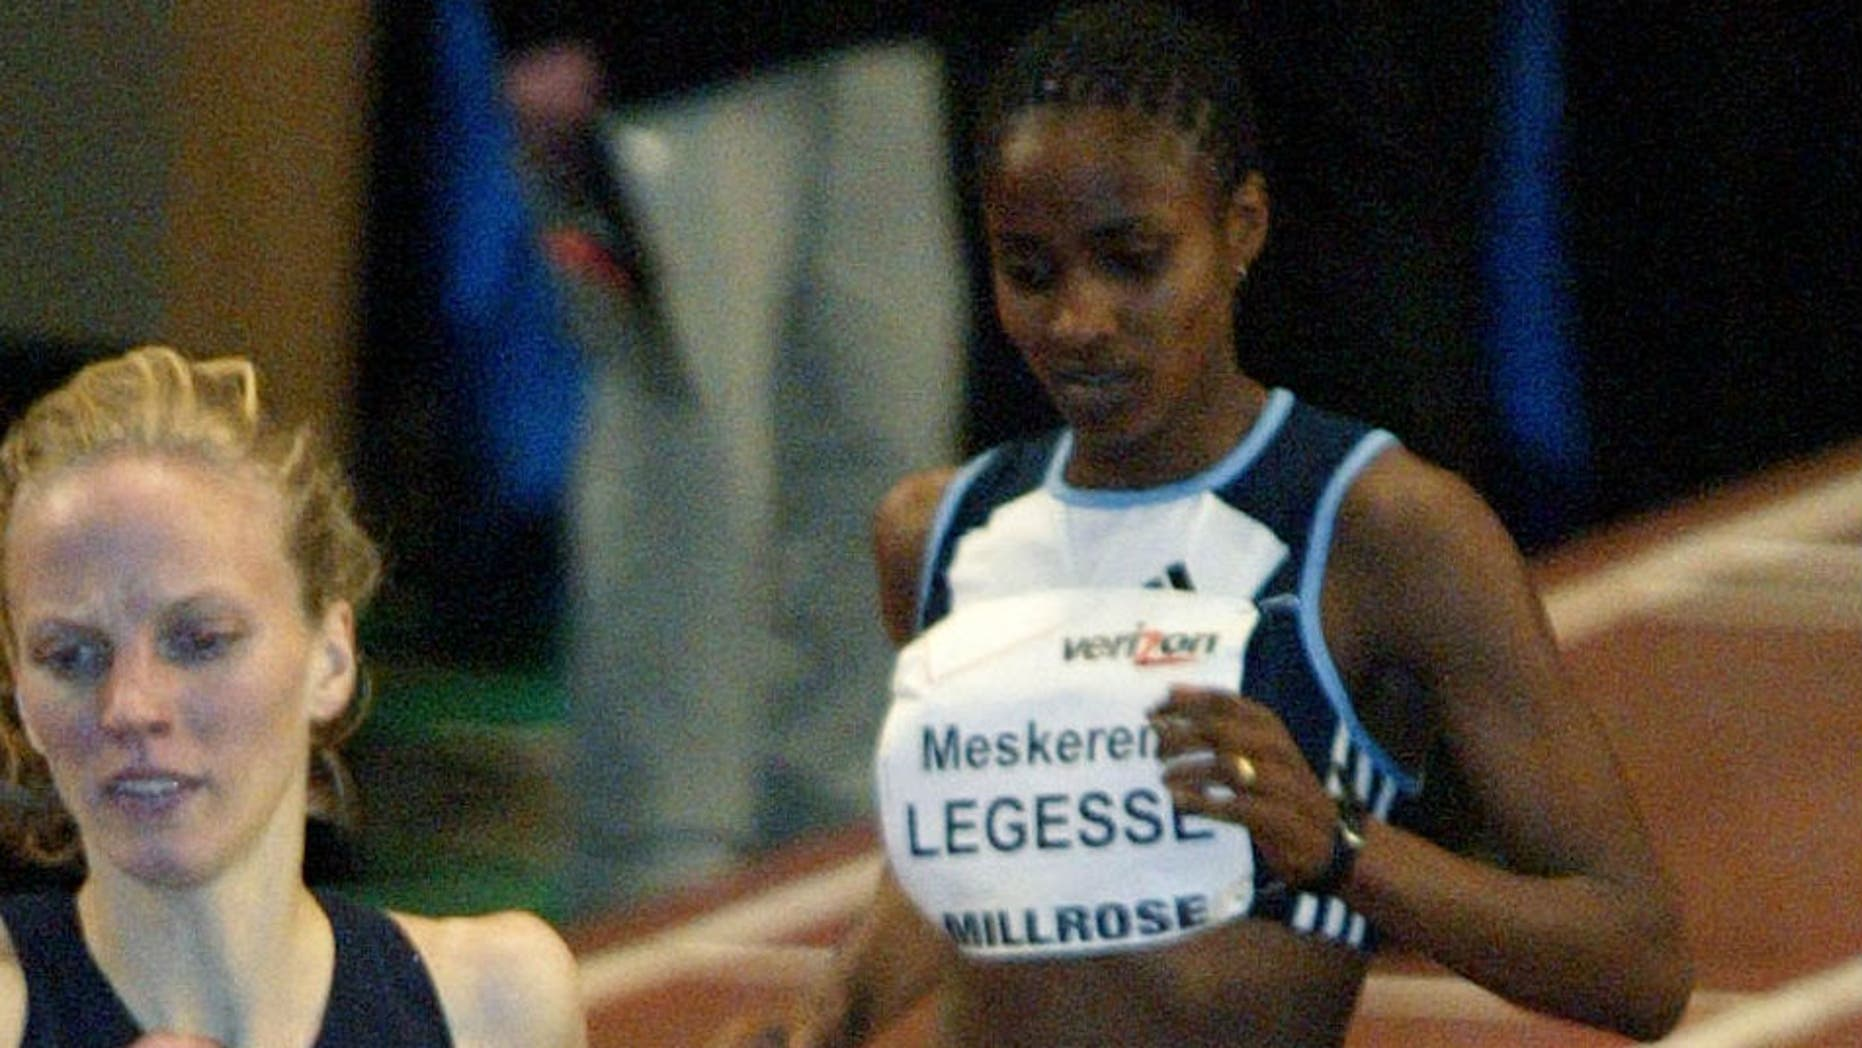 FILE: Meskerem Legesse competes in the Women's 1500 meter run at the Millrose Games at New York's Madison Square Garden.